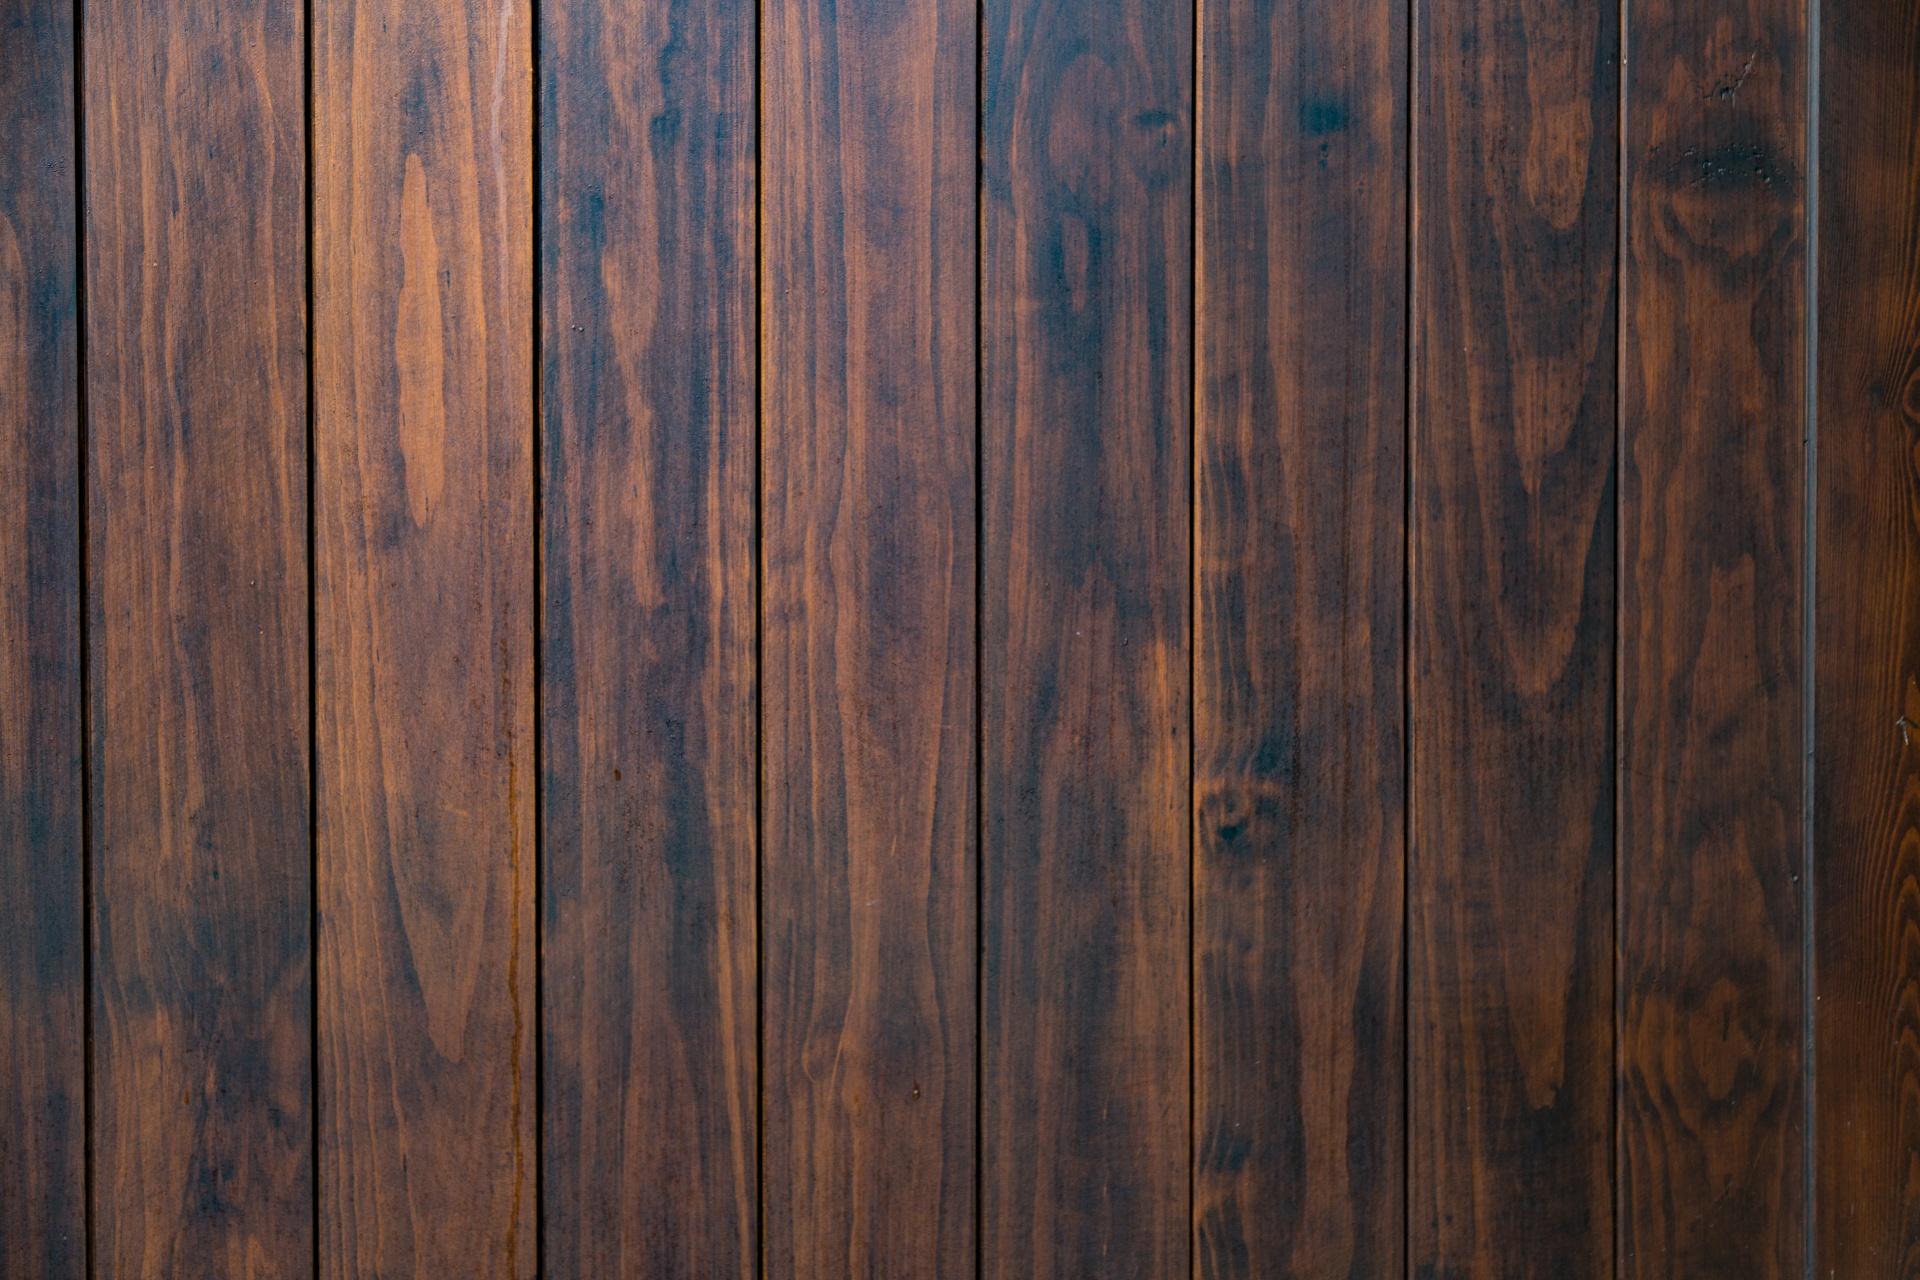 Wood clipart wood wall Images Wooden Online Wood Images